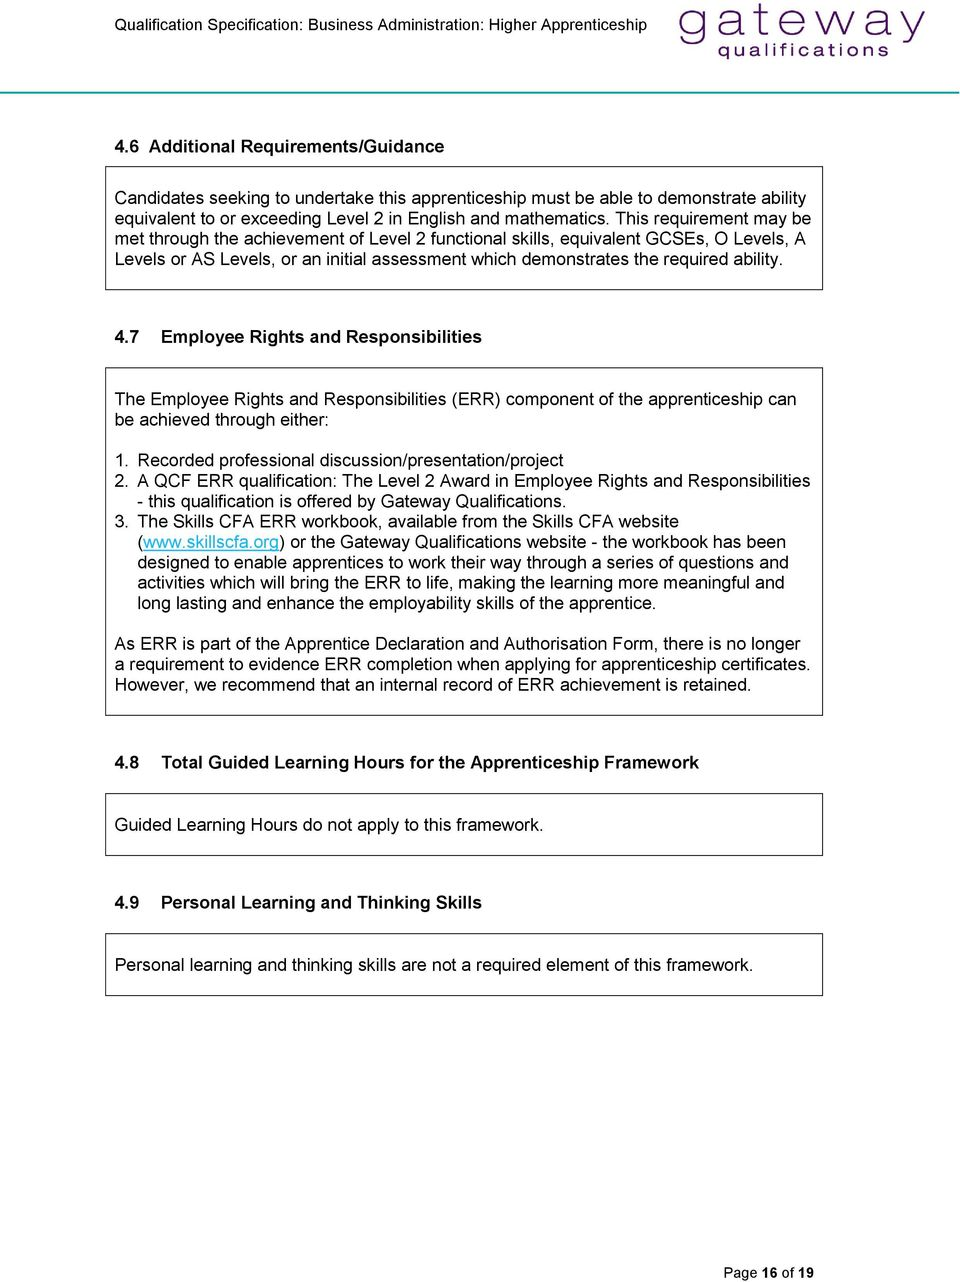 4.7 Employee Rights and Responsibilities The Employee Rights and Responsibilities (ERR) component of the apprenticeship can be achieved through either: 1.